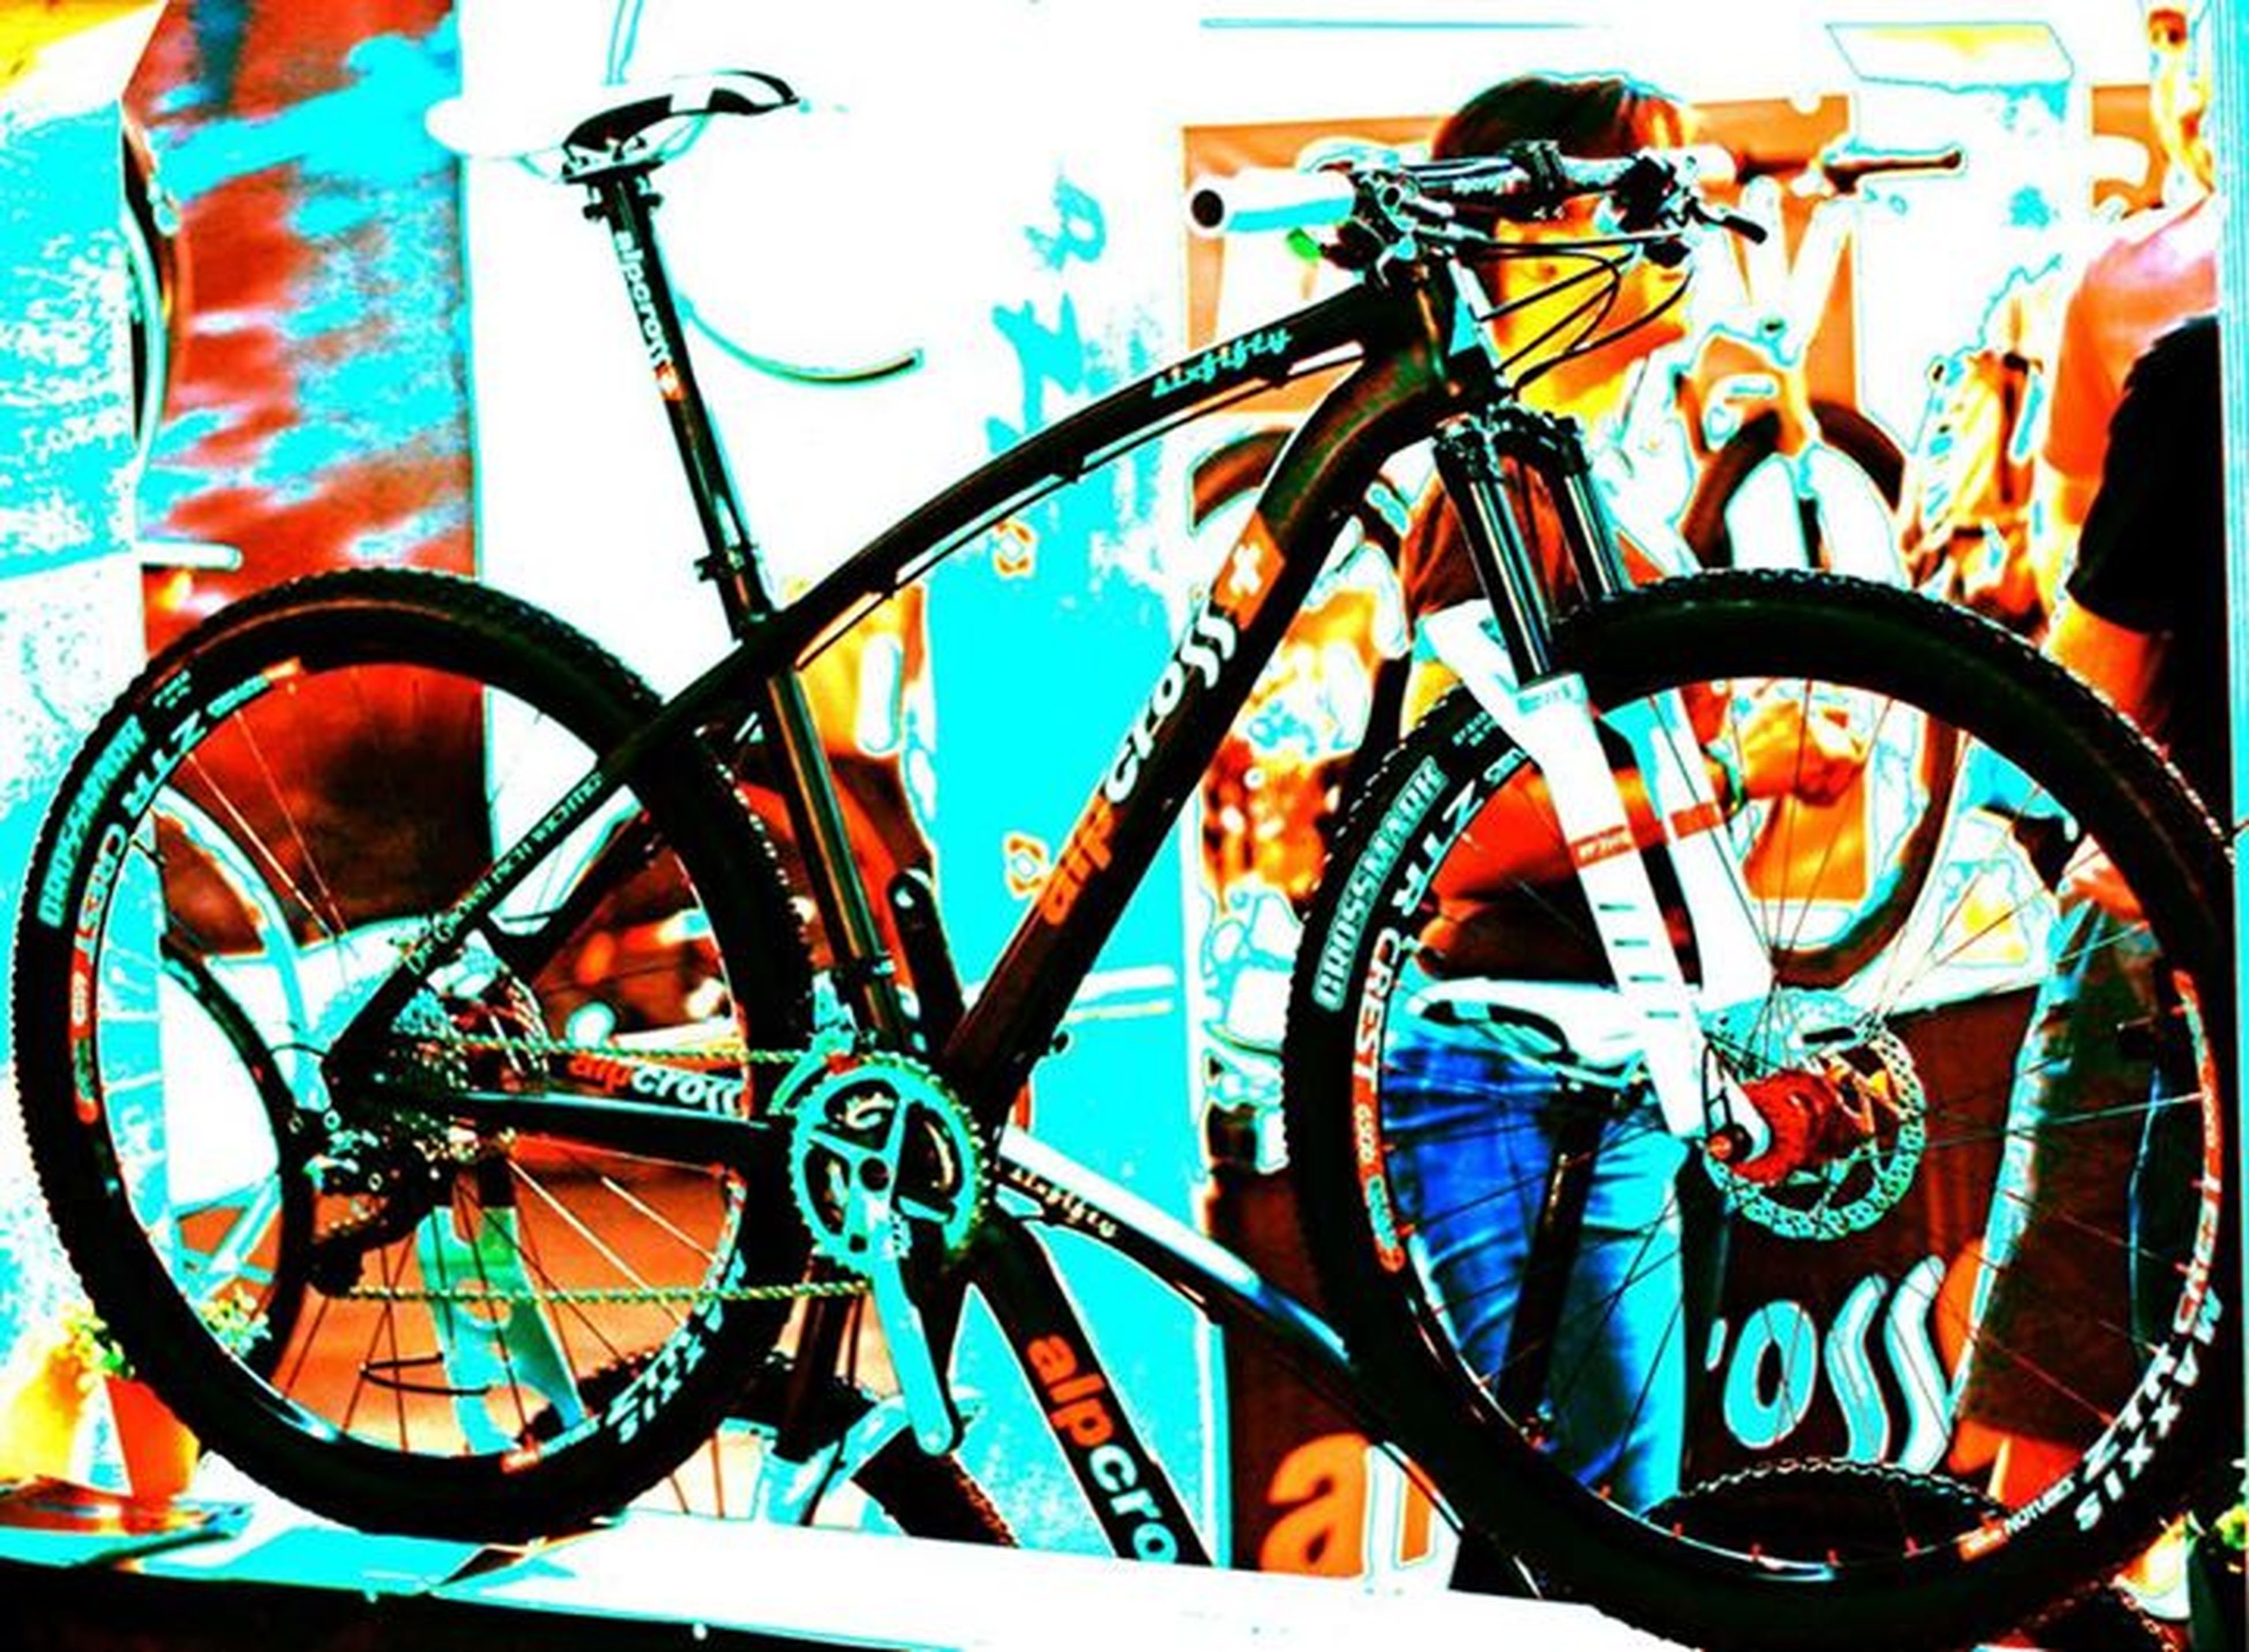 bicycle, multi colored, wall - building feature, graffiti, art and craft, creativity, blue, art, stationary, day, no people, wall, transportation, outdoors, wheel, mode of transport, parking, close-up, built structure, yellow